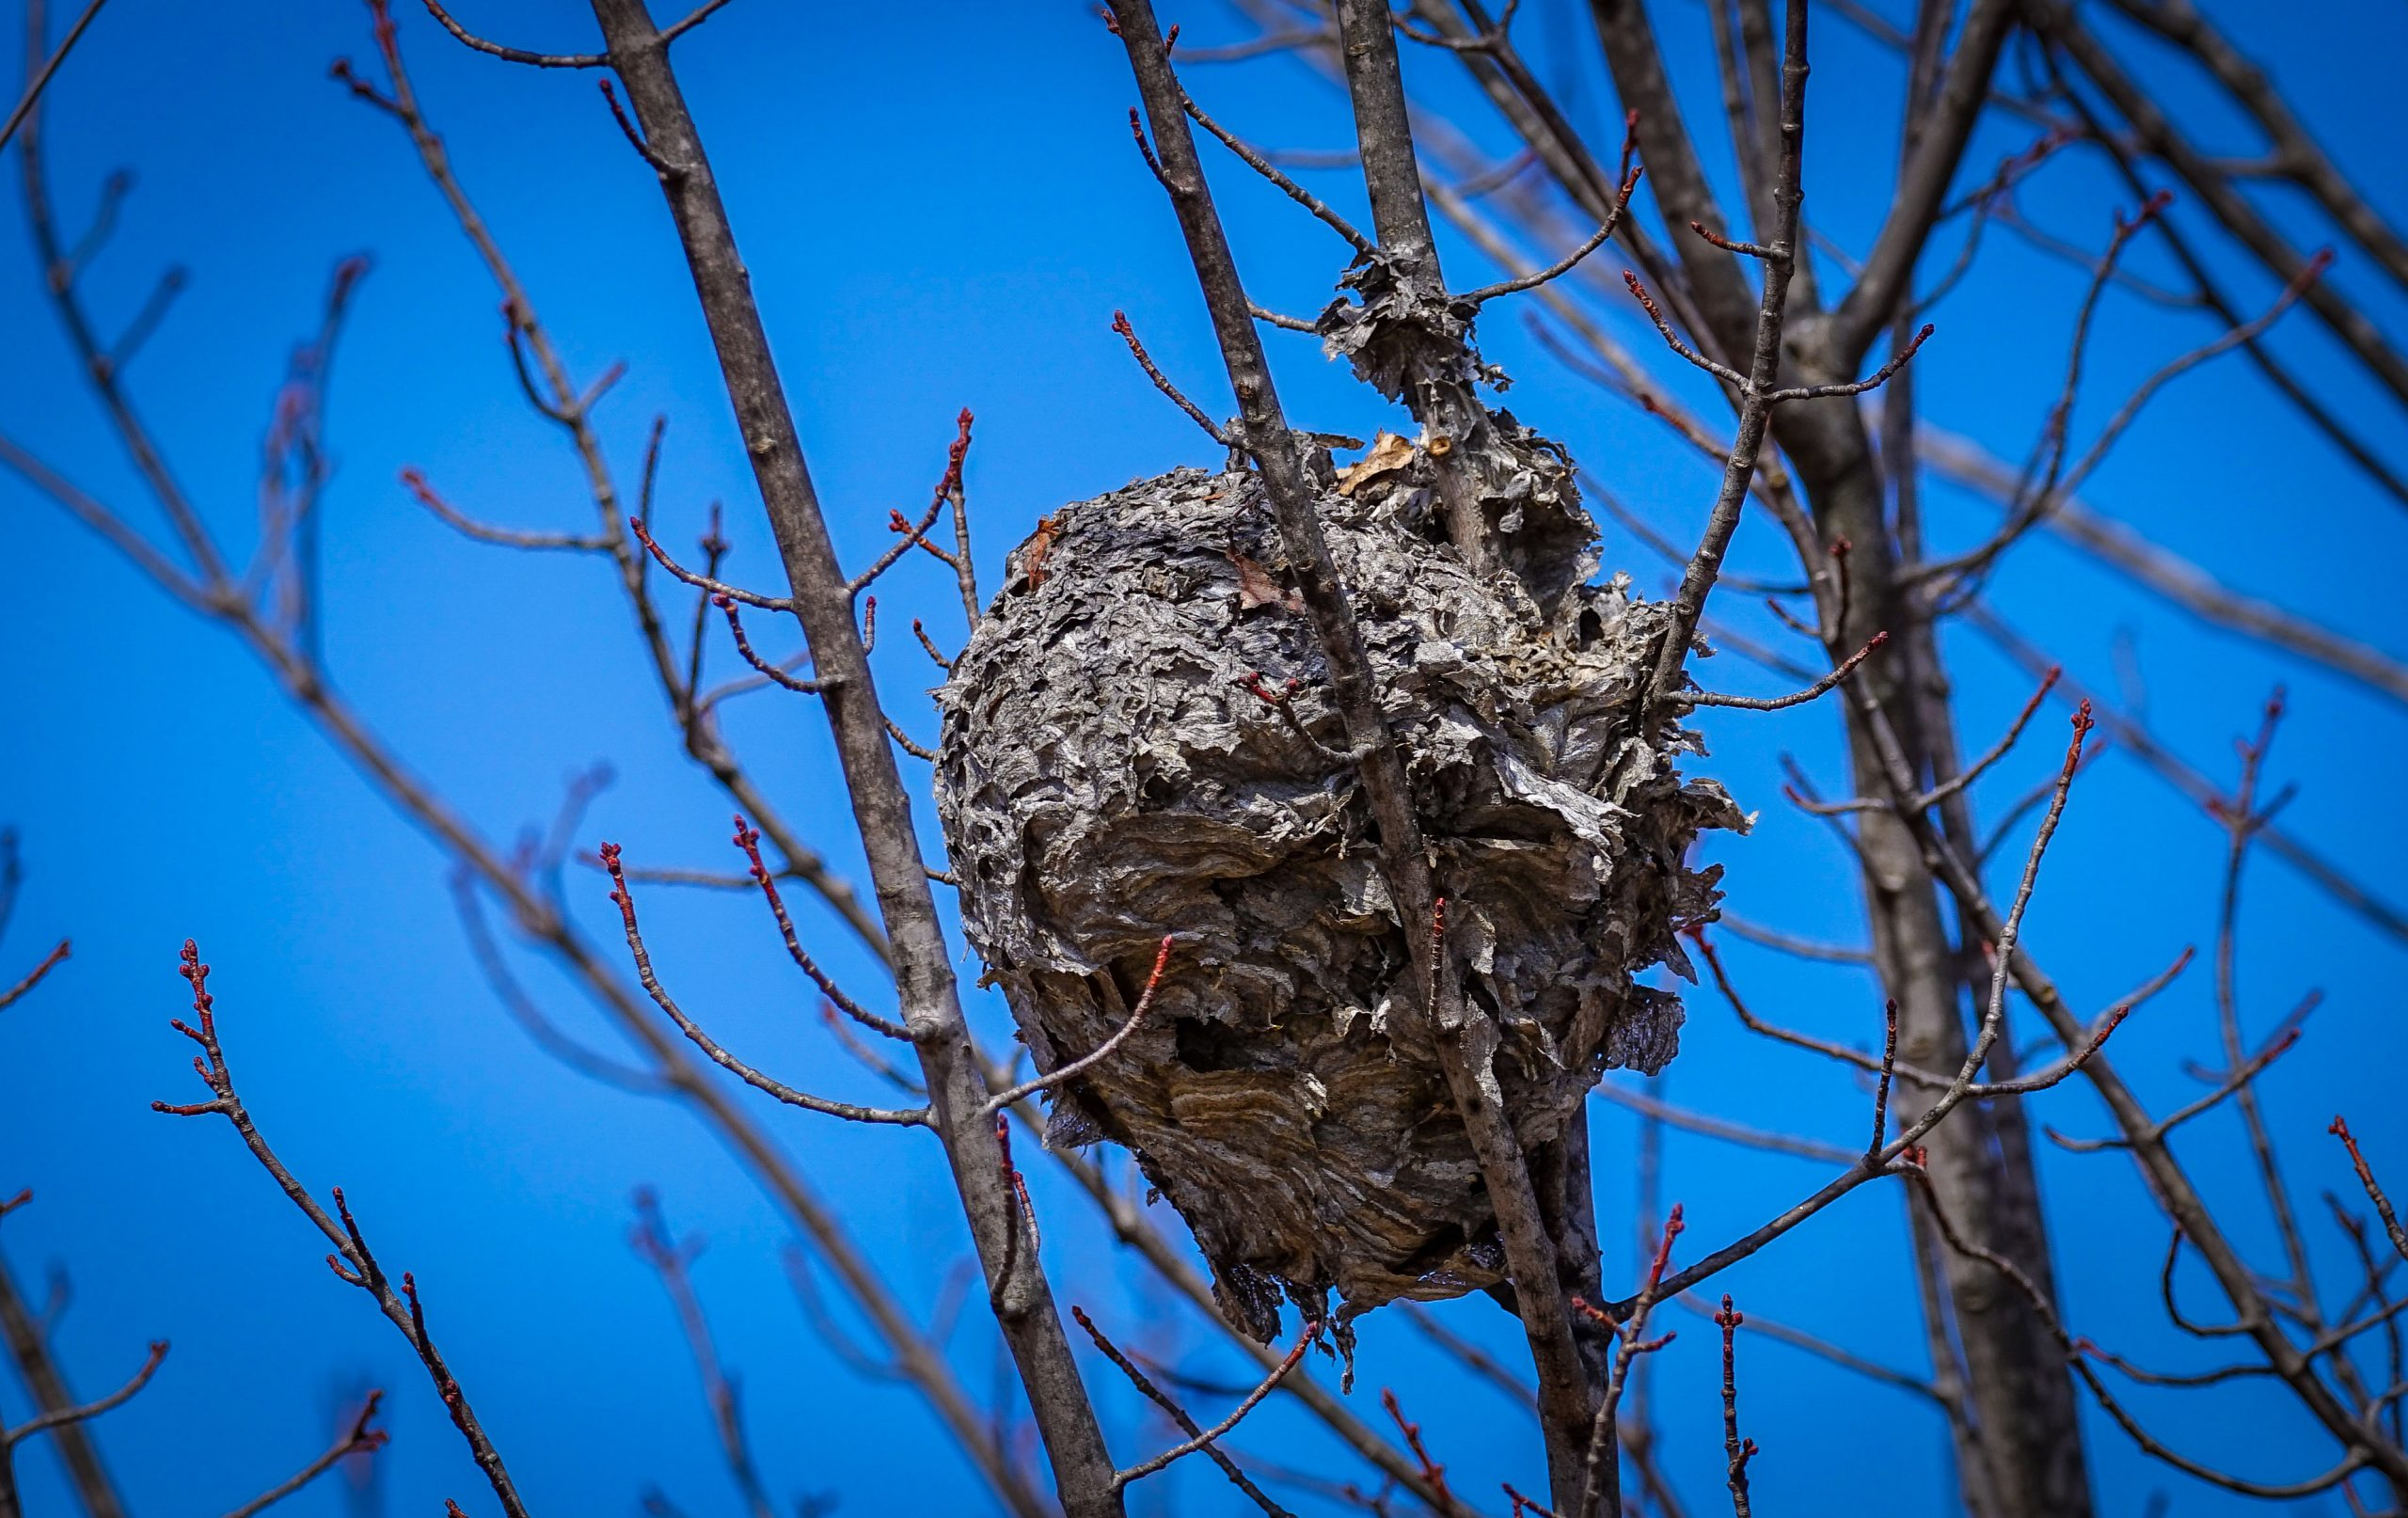 This photo was taken on March 8 at the Feynman Computing Center near the parking lot. The hornet nest was later spotted on the ground, after the weather likely knocked it out of the tree. nature, wildlife, animal, insect, hornet, tree, plant Photo: Greg Cisko